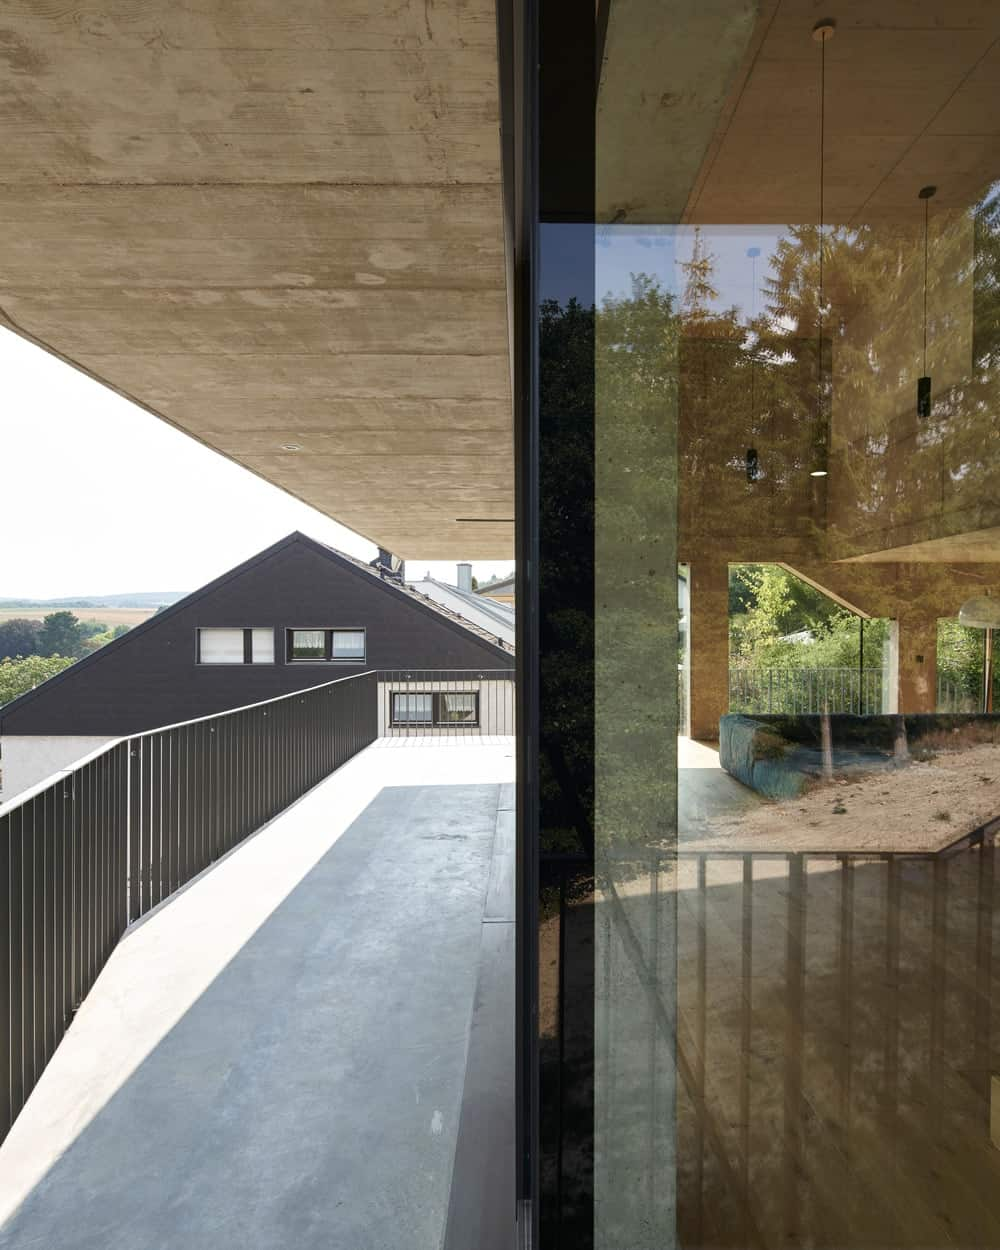 The glass walls give a glimpse of the interiors of the house and at the same time bring in natural lighting.